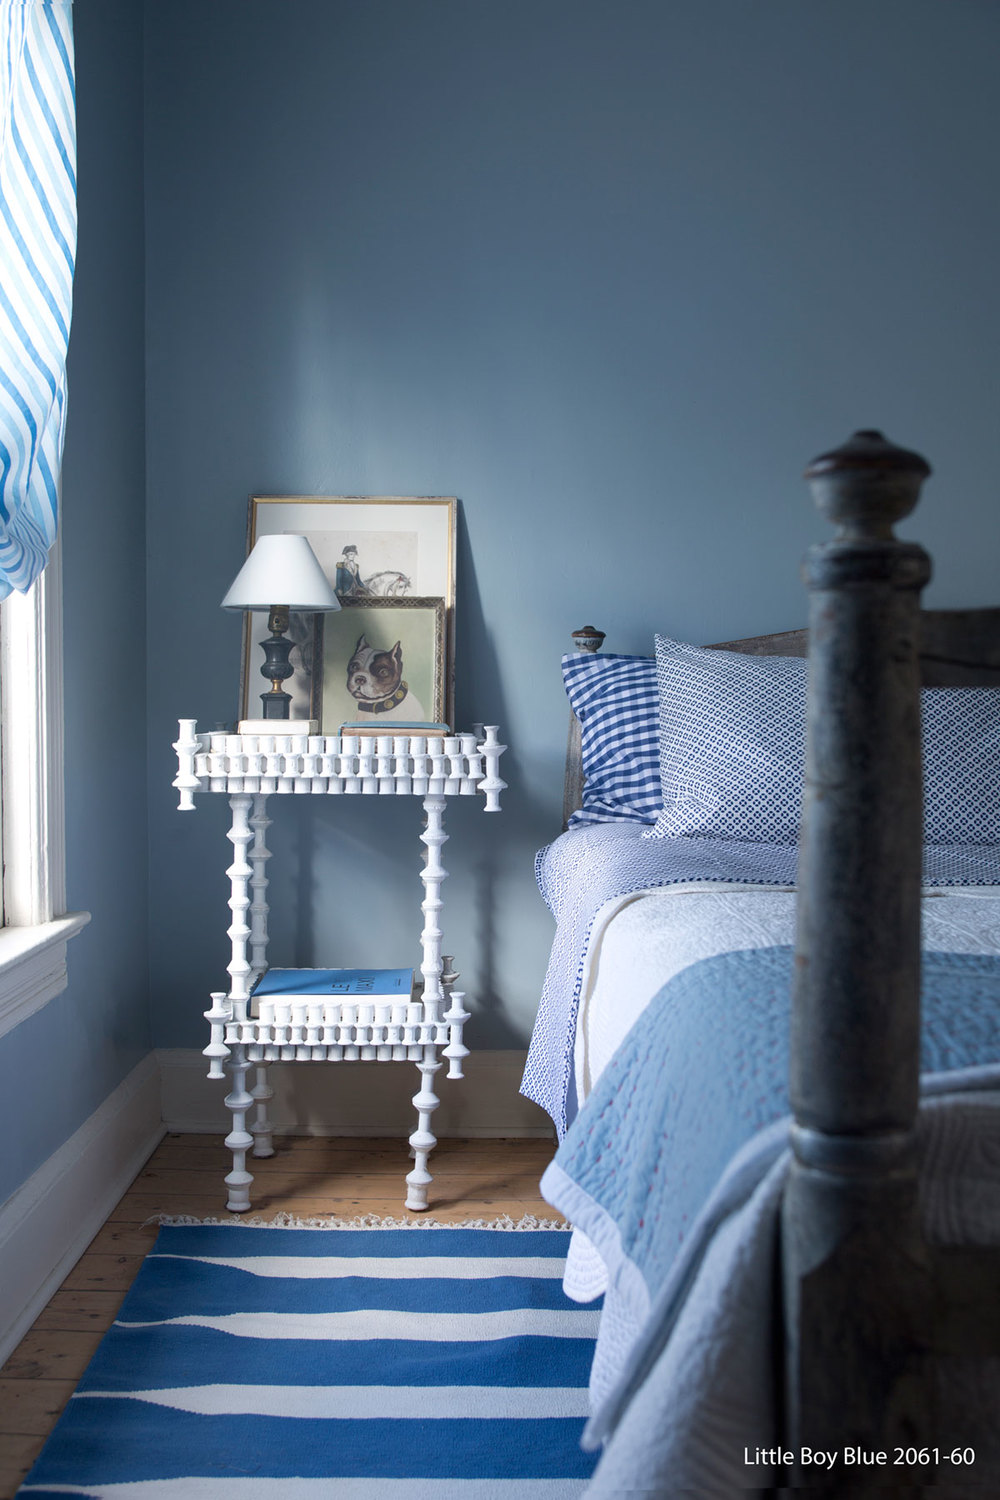 bedroom_littleboyblue_2061_60-3.jpg